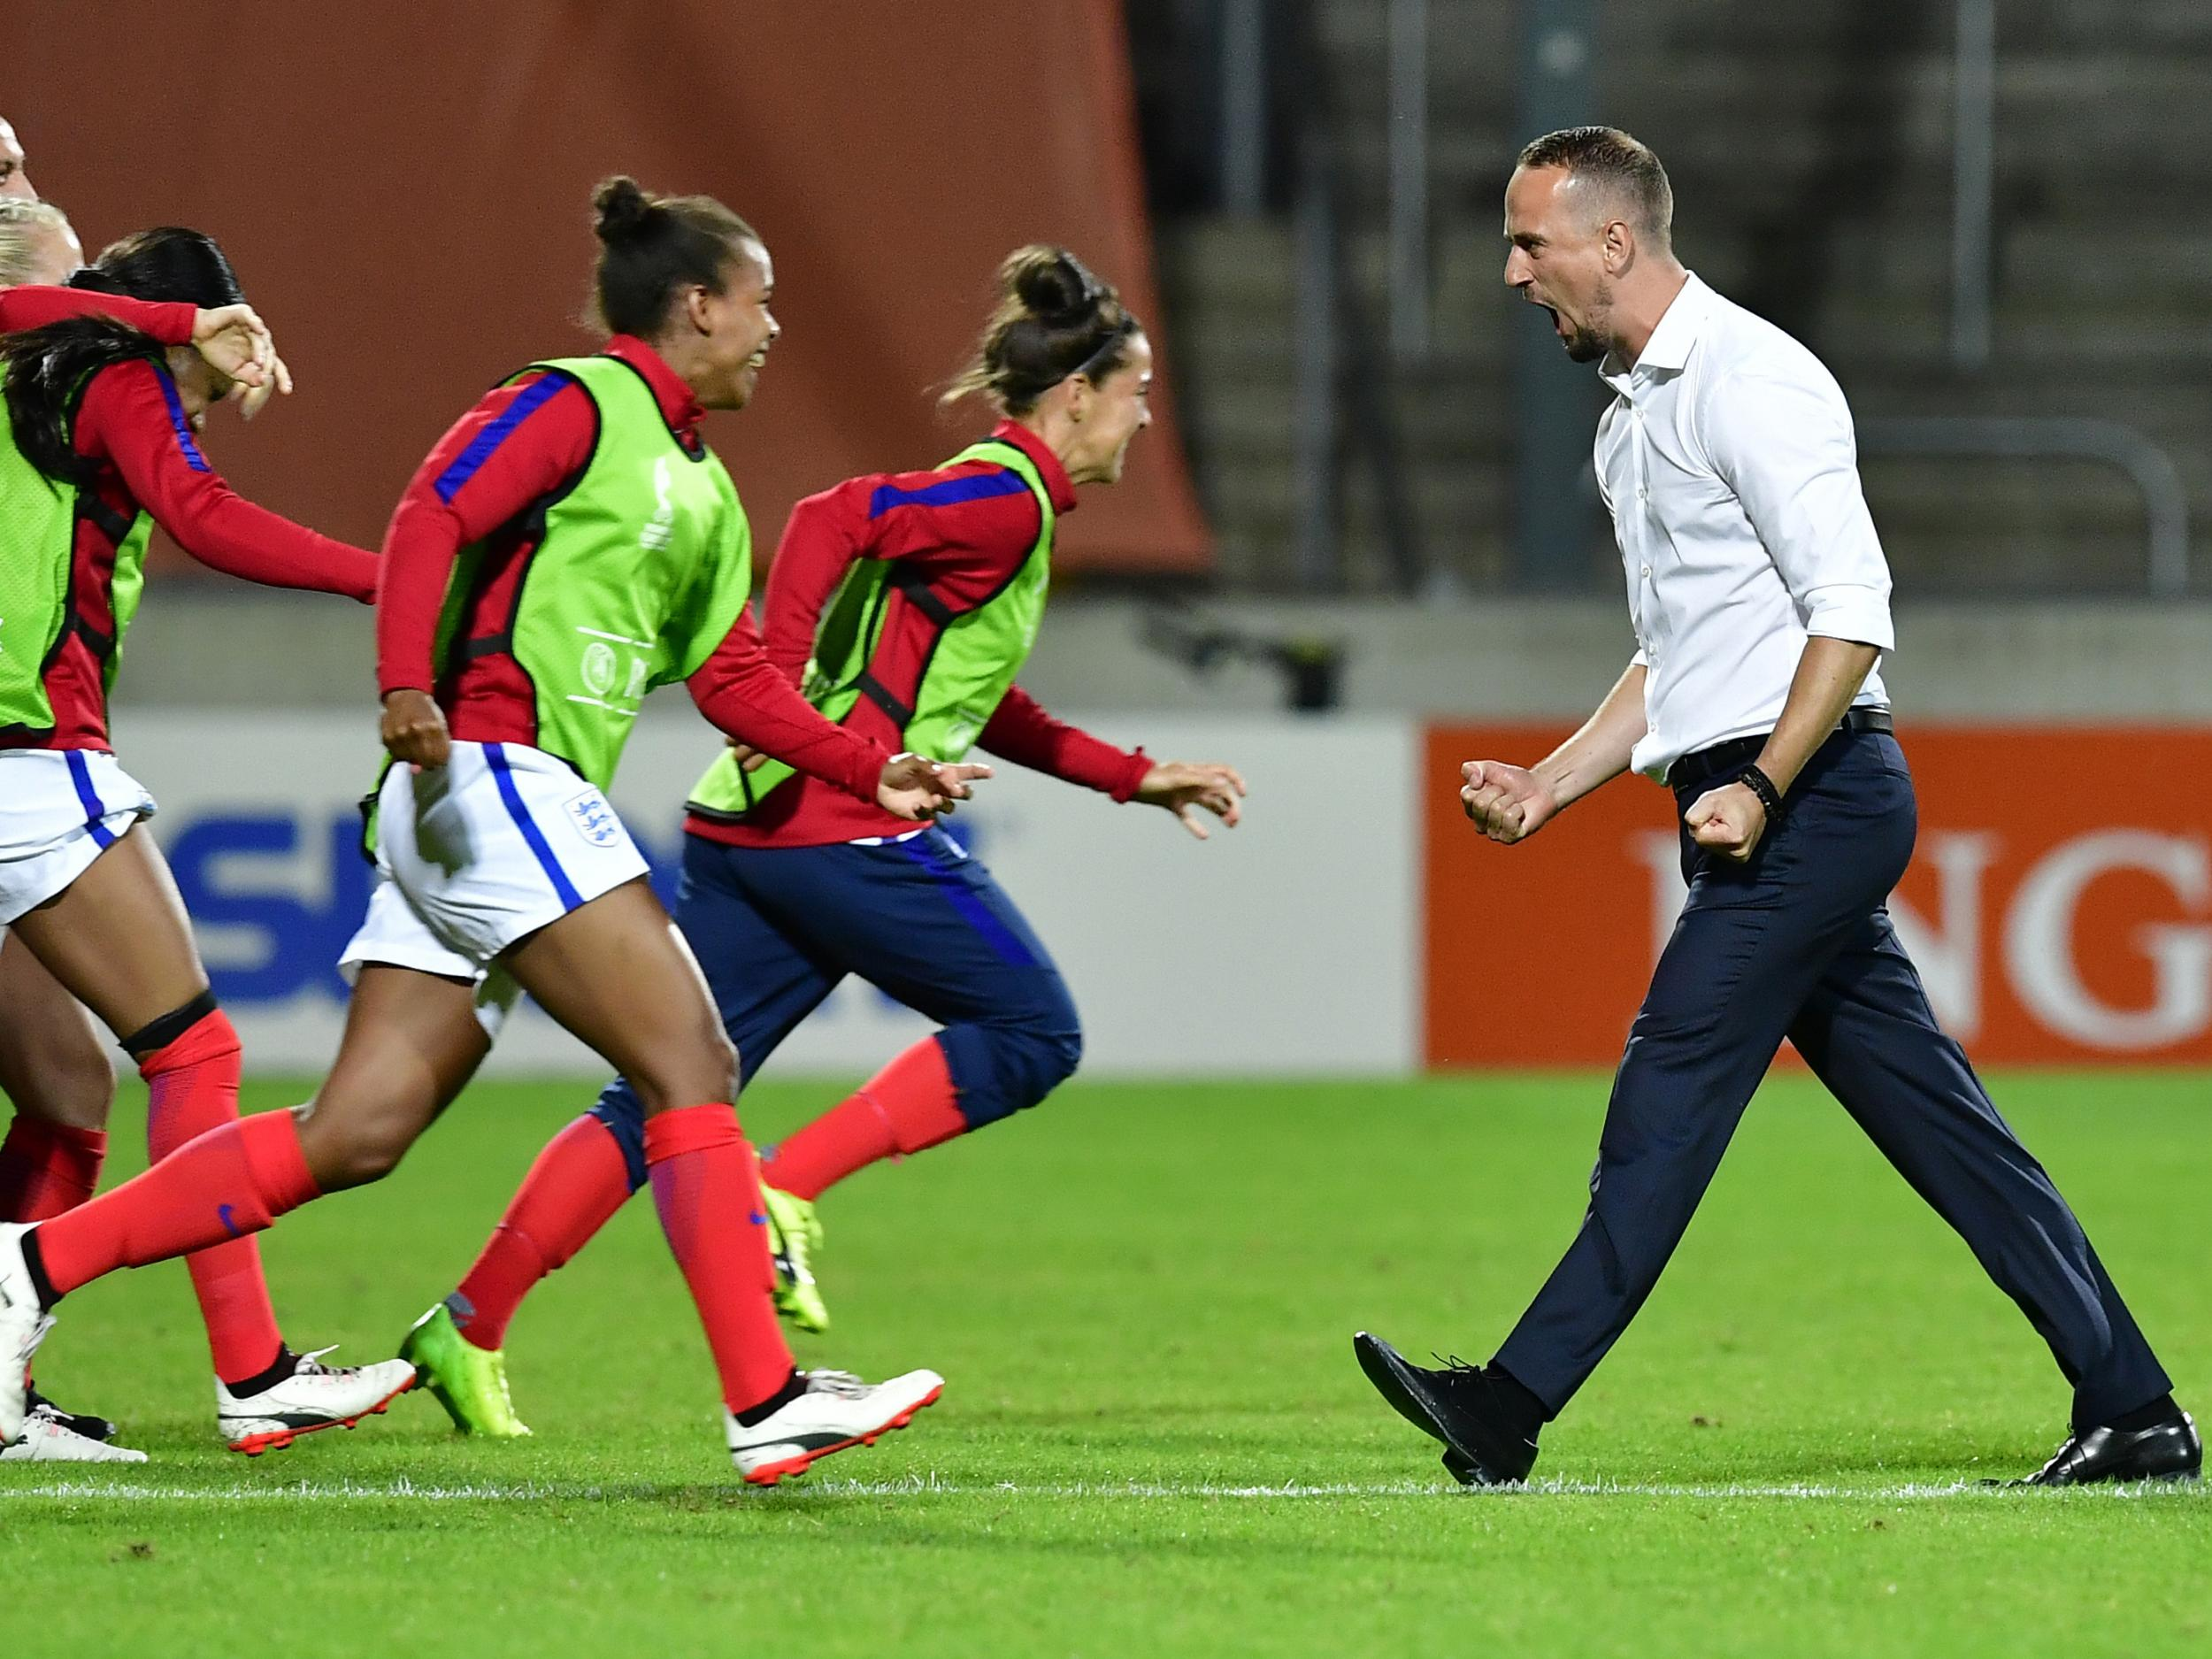 Mark Sampson rejects suggestions England are now favourites for Women's Euro 2017 after France victory